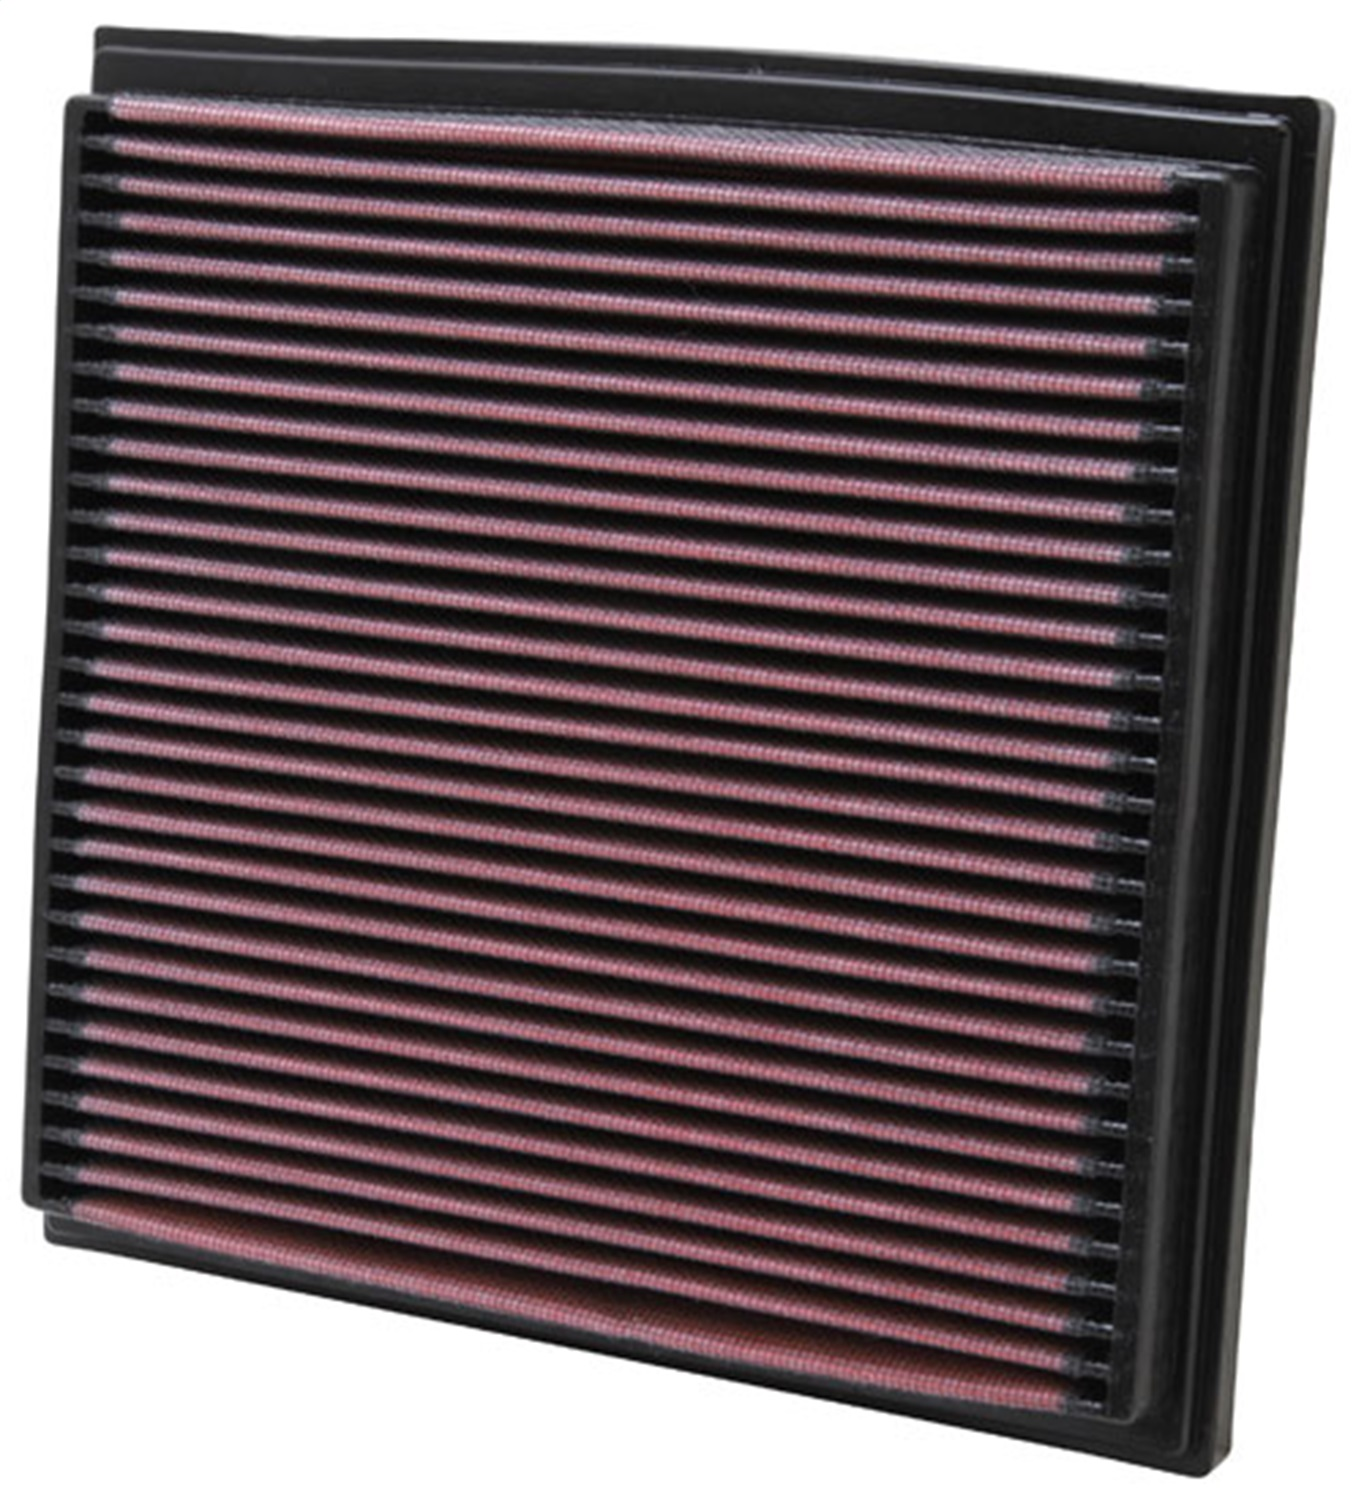 K&N Filters 33-2733 Air Filter Fits 95-99 318i 318is 318ti Z3 33-2733